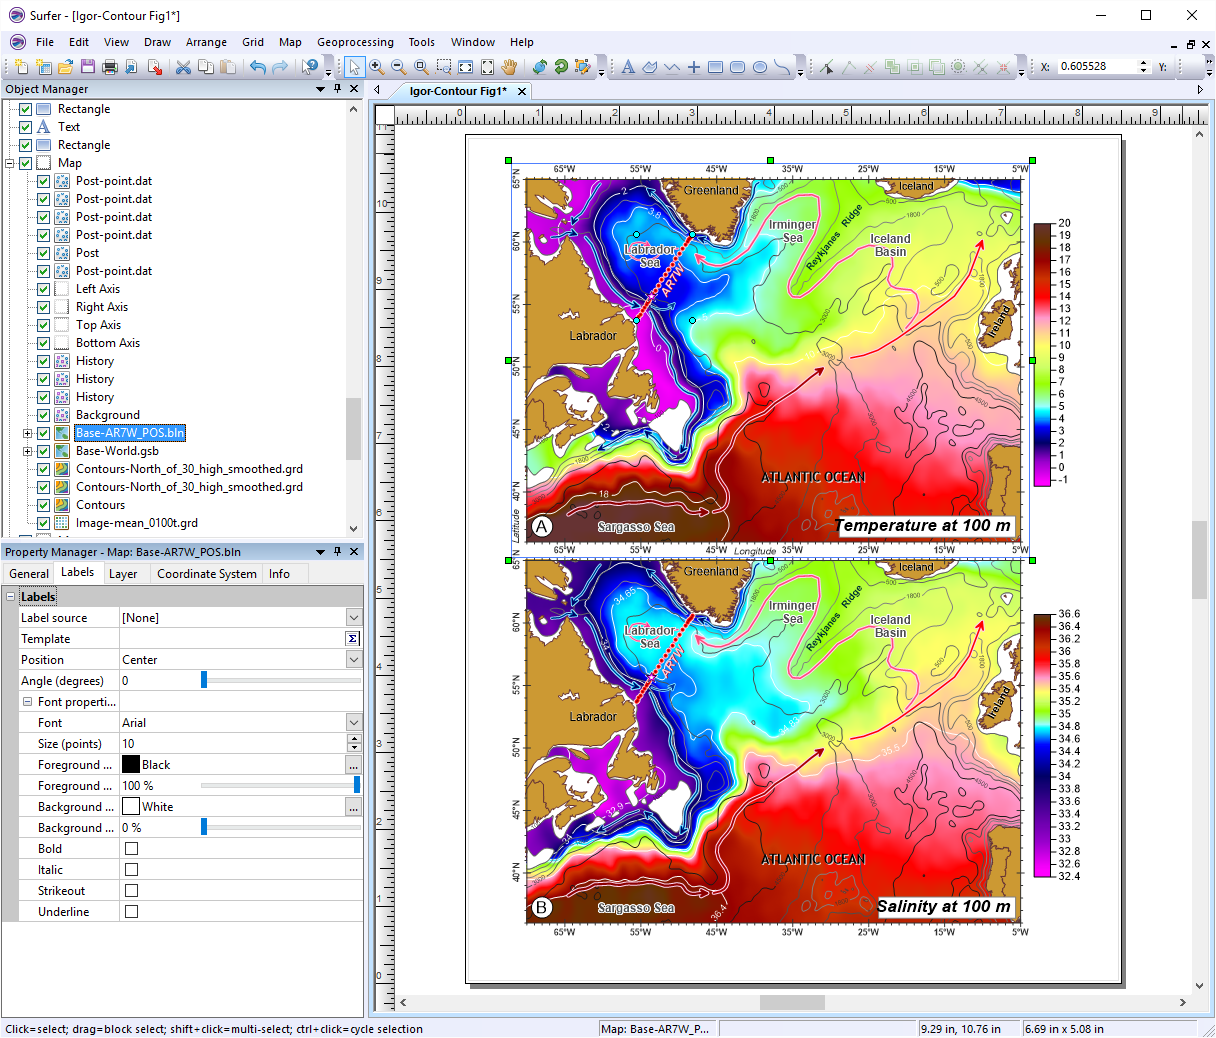 Surfer Demo - Surfer® Temperature and Salinity Contour Map of the Atlantic Ocean